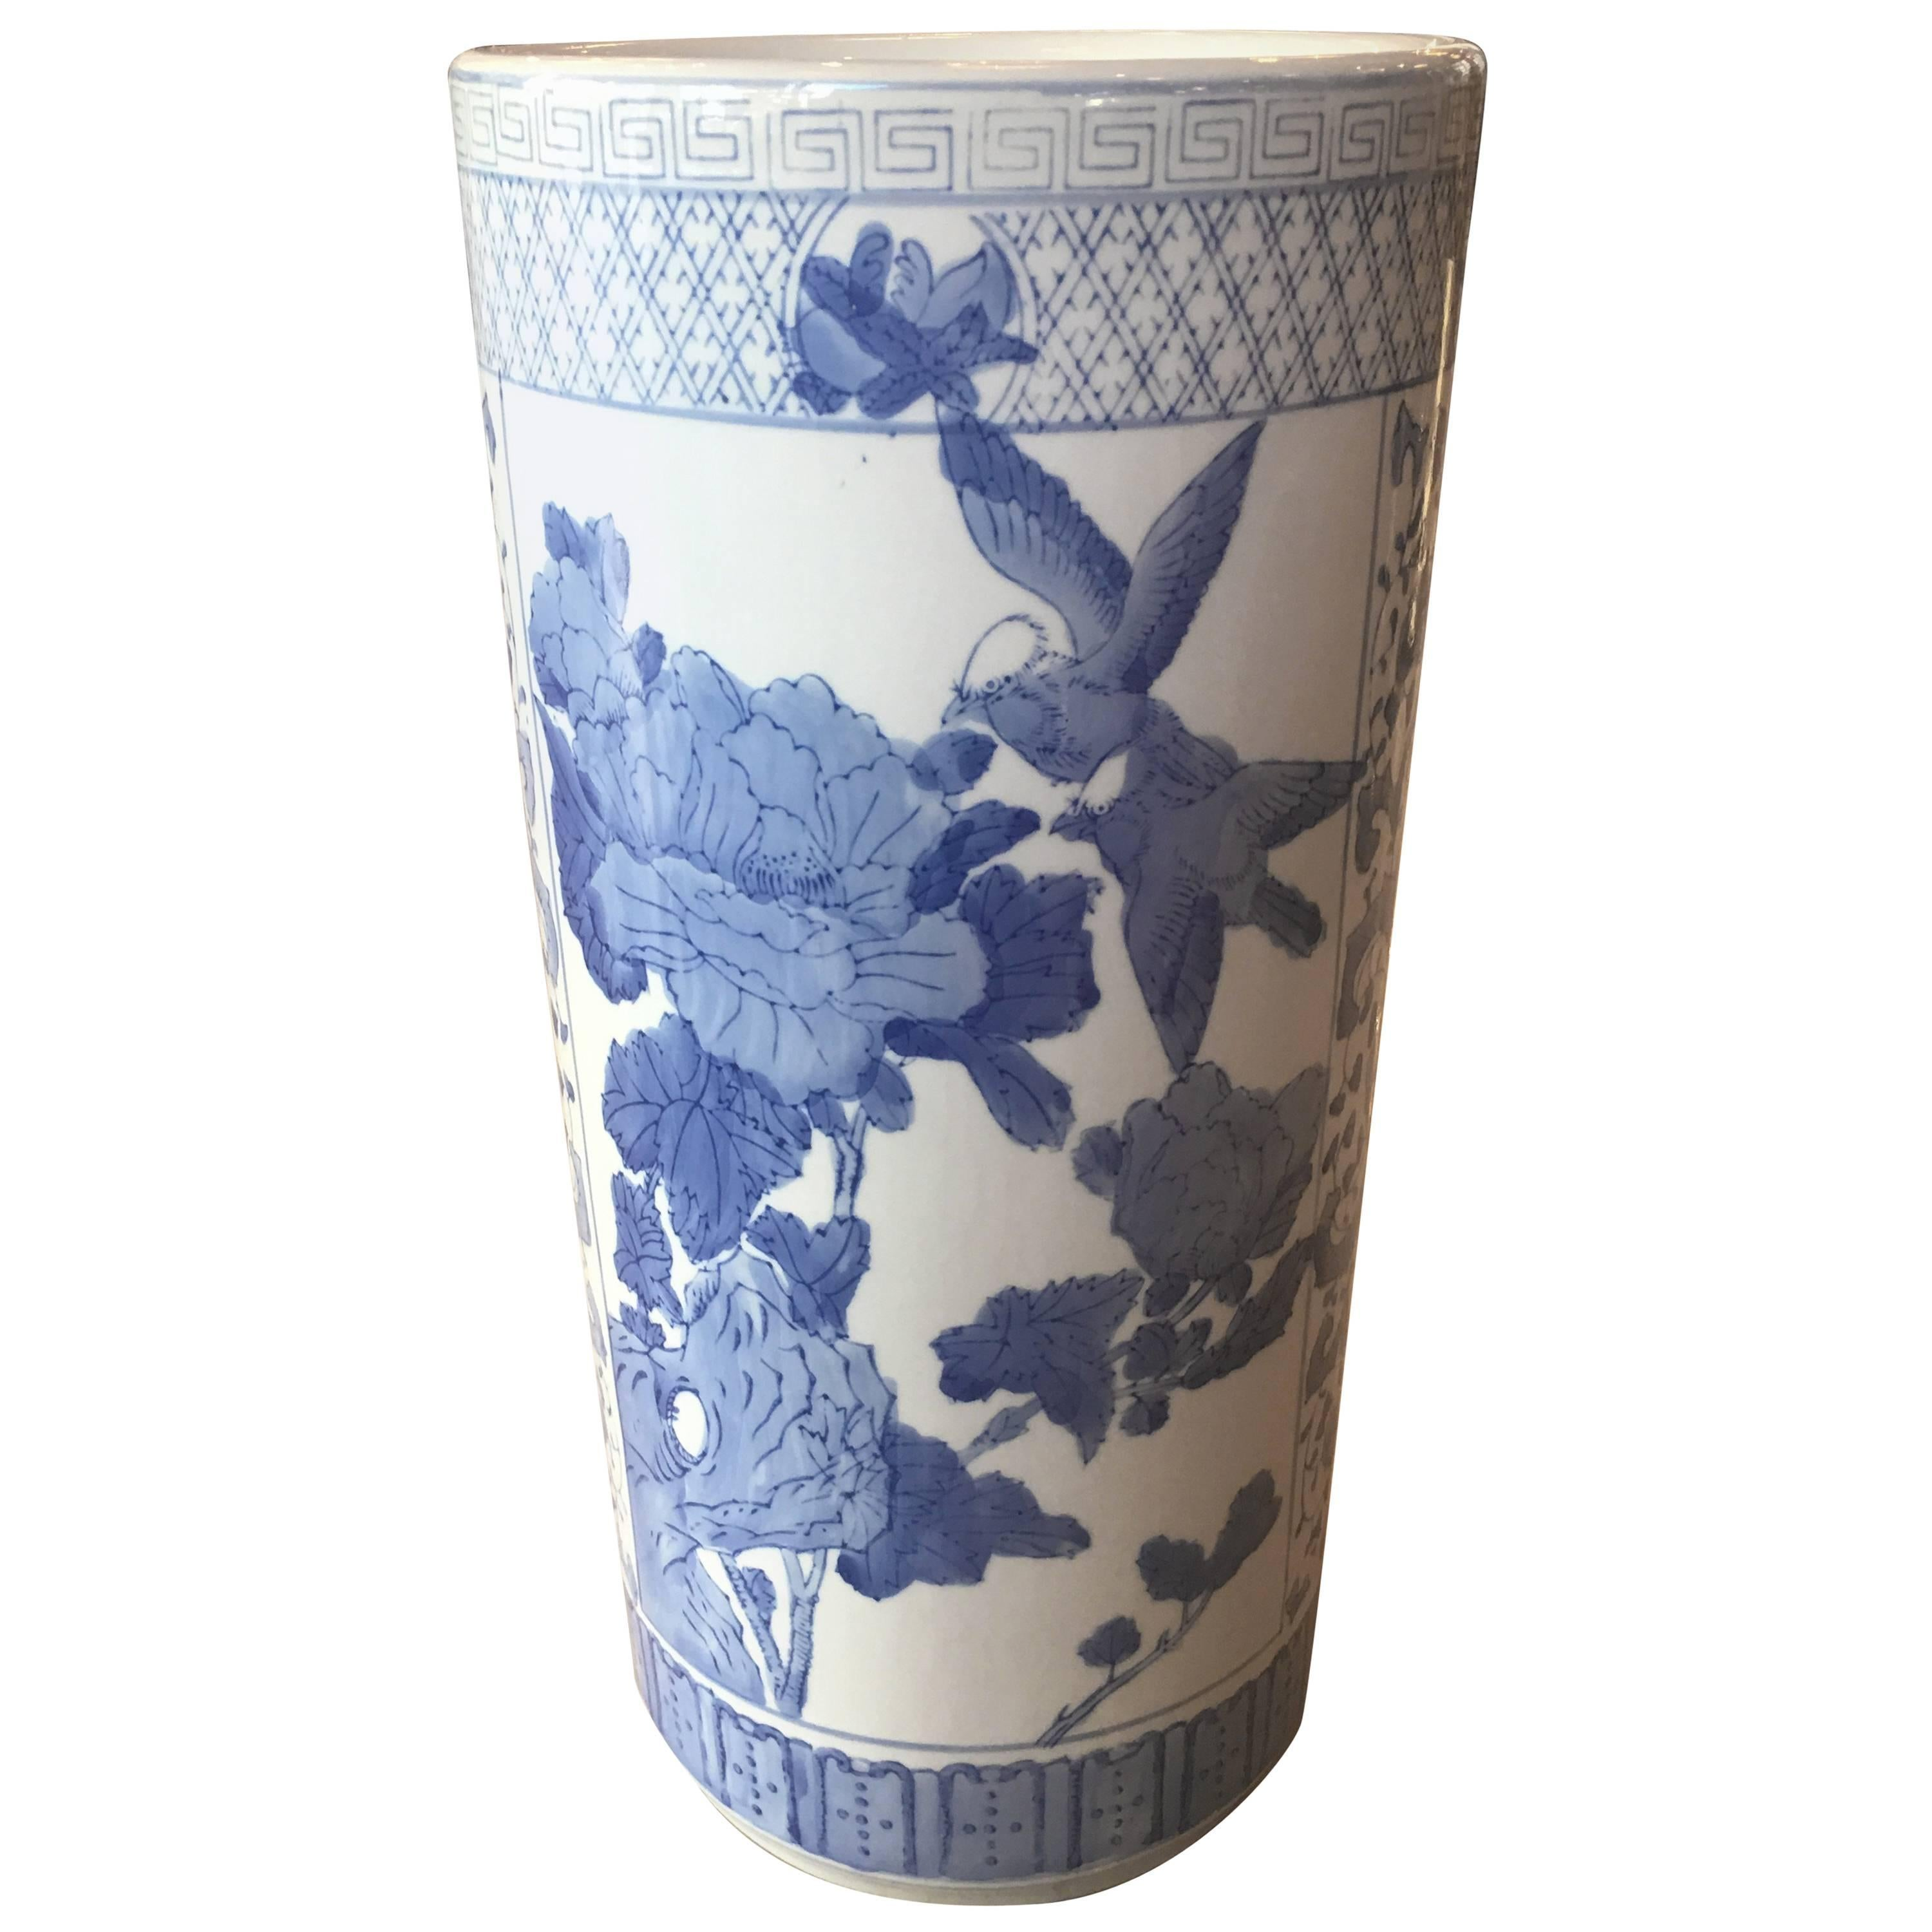 Charmant Vintage Umbrella Stand Blue And White Greek Key Chinoiserie Birds Chinese